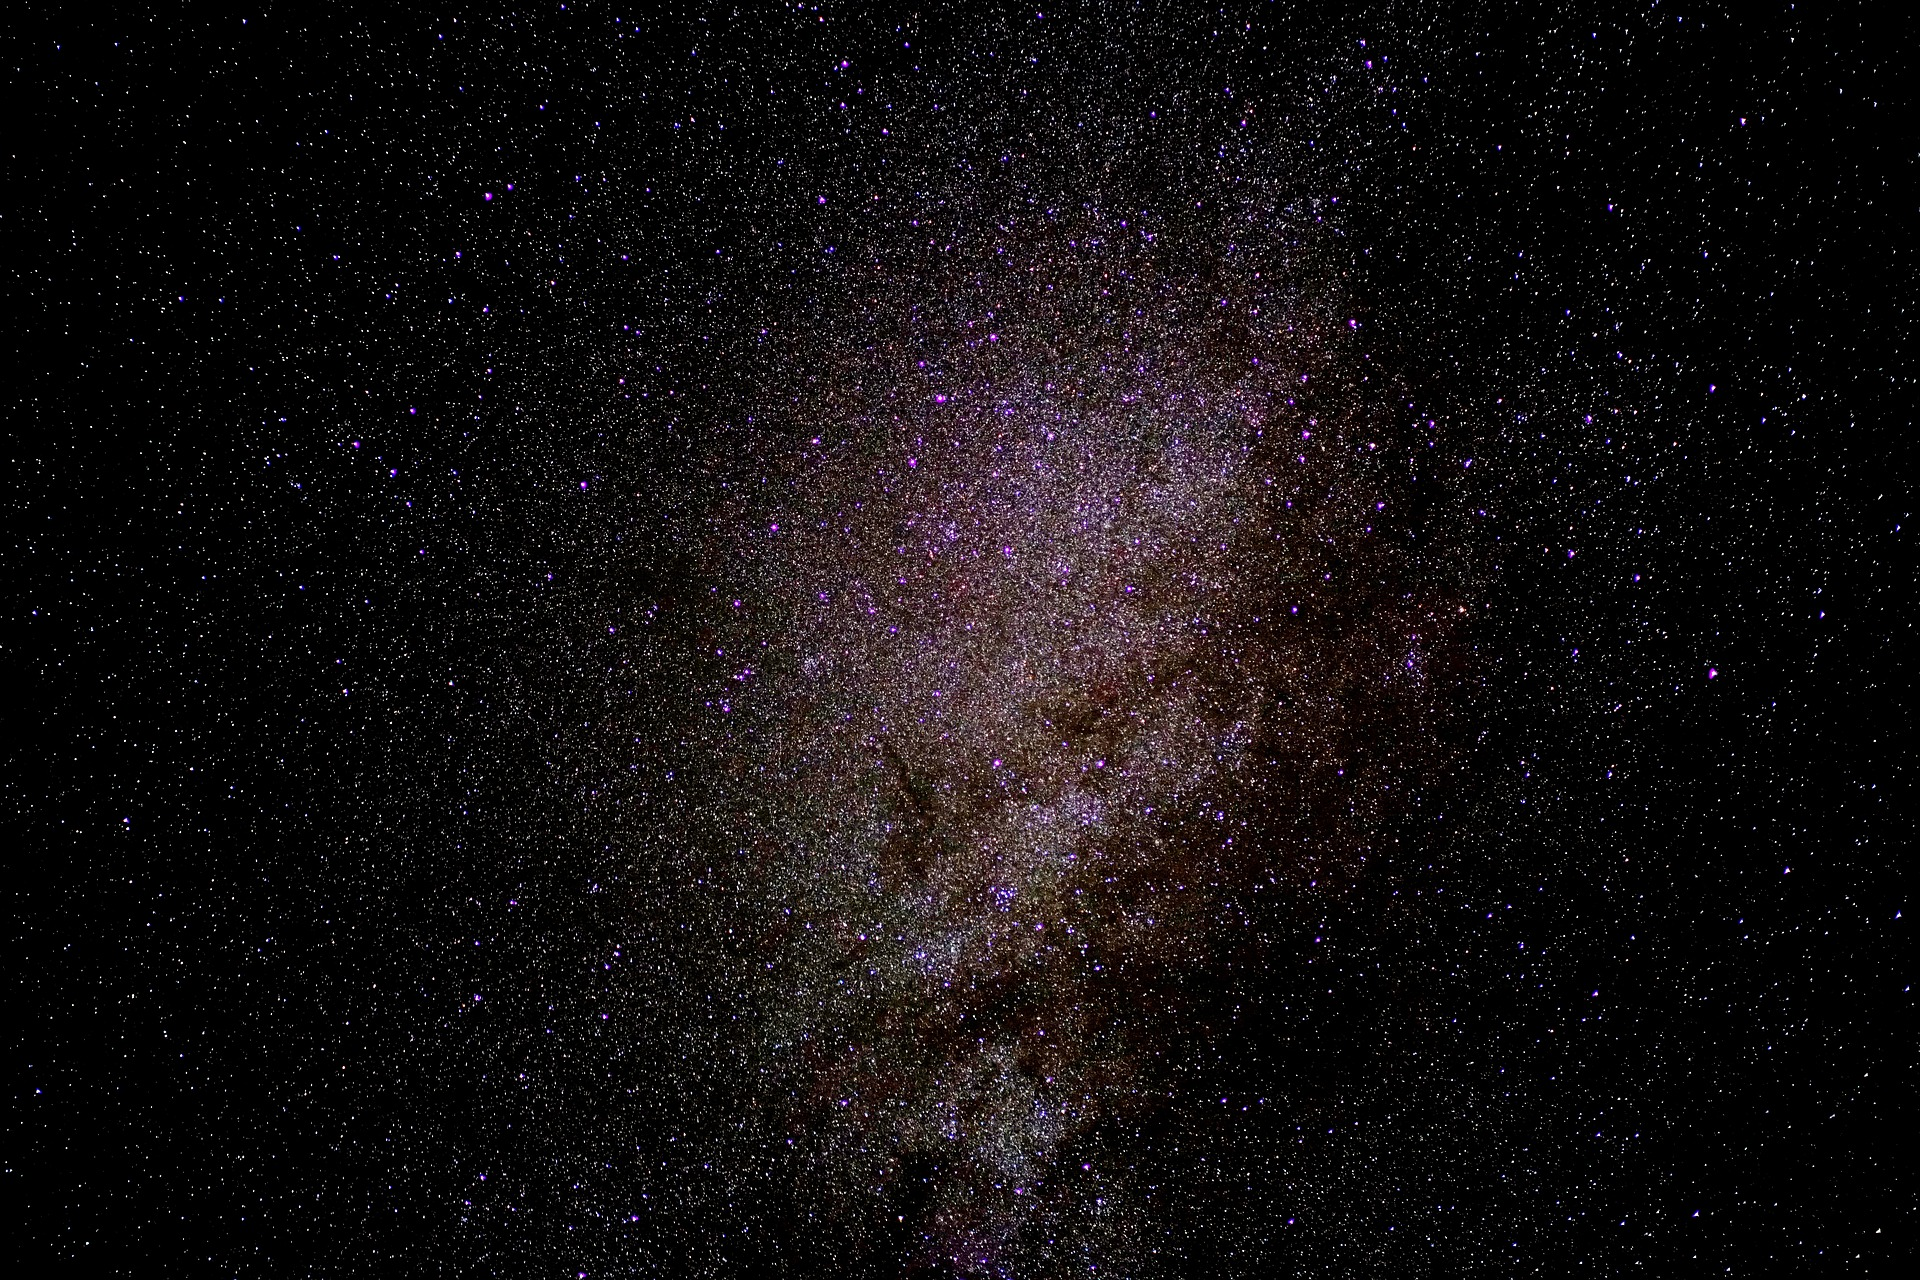 milky-way-1655504_1920.jpg